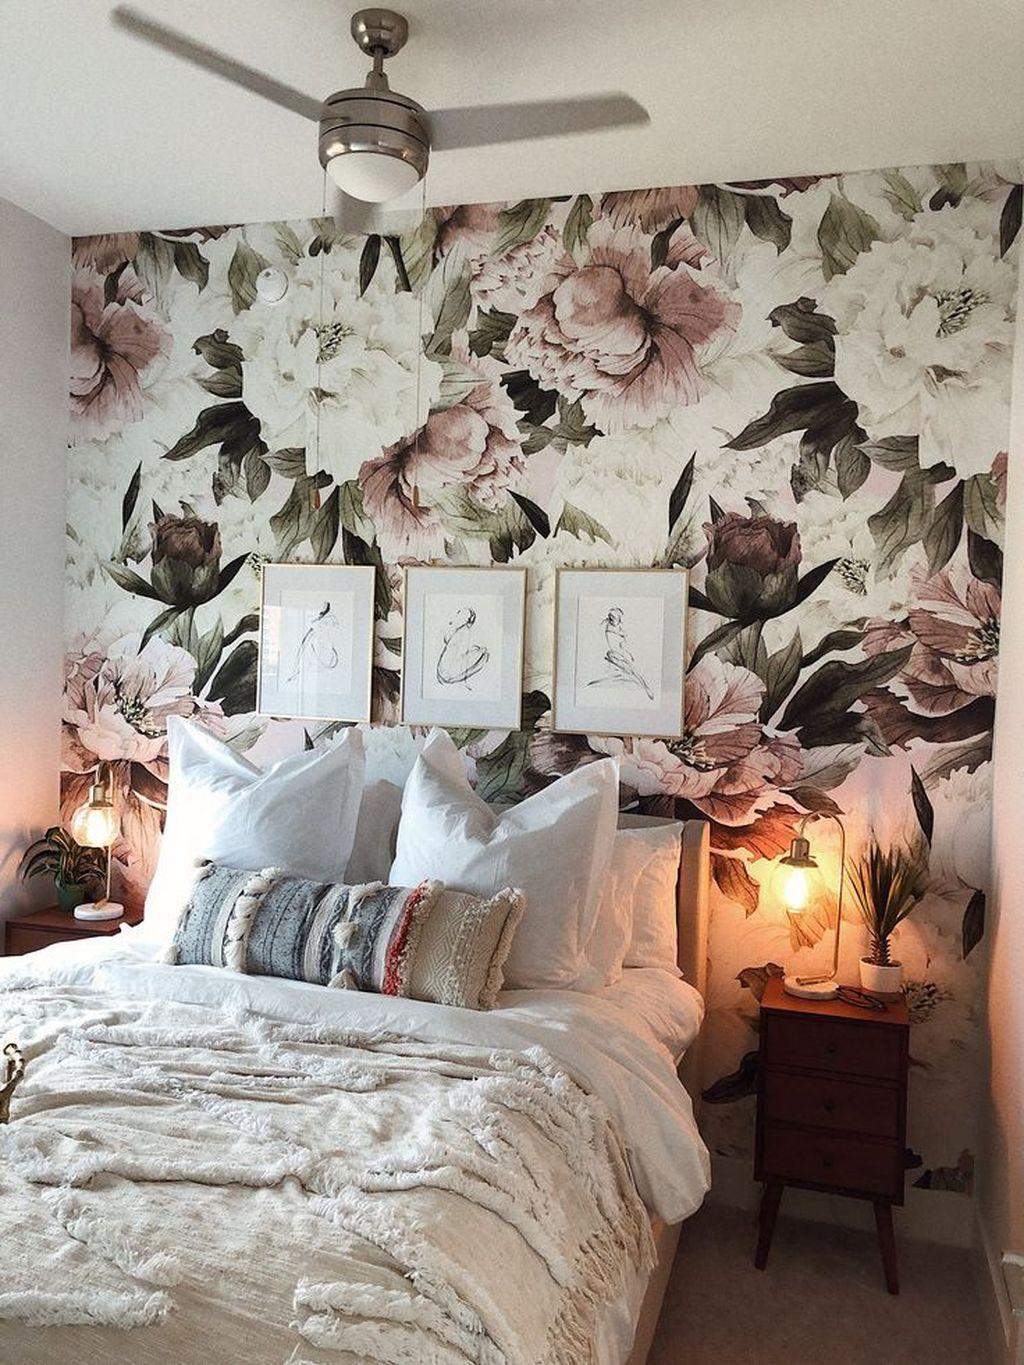 Best Bedroom Wallpaper Decor Ideas That Suitable For Your Family 29